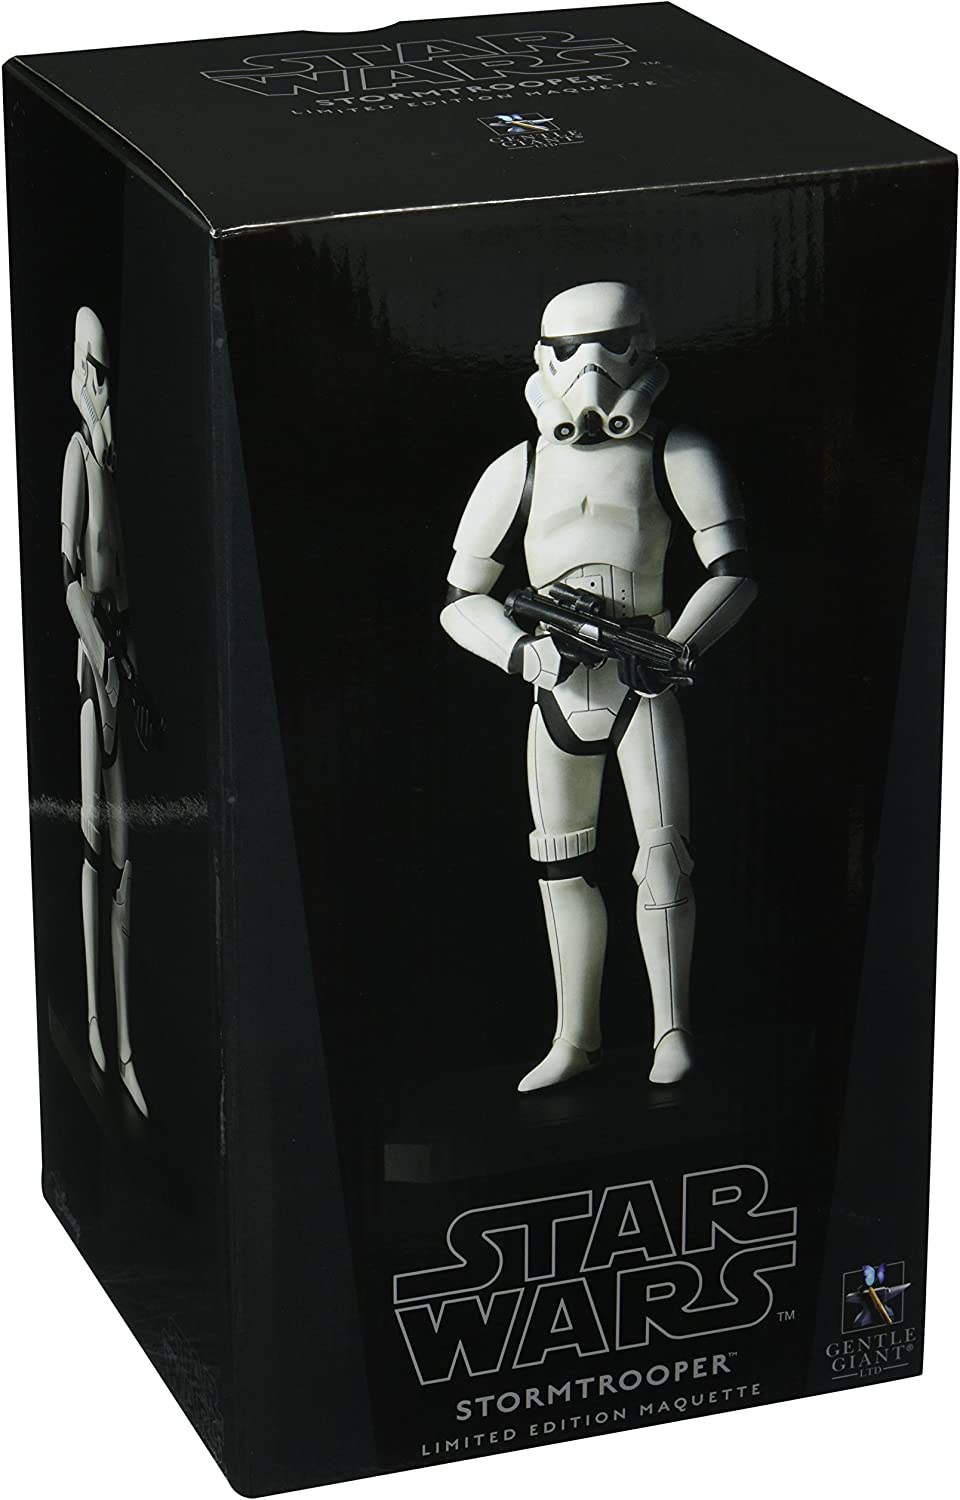 Gentle Giant Studios Star Wars Rebels: Storm Trooper Maquette Statue